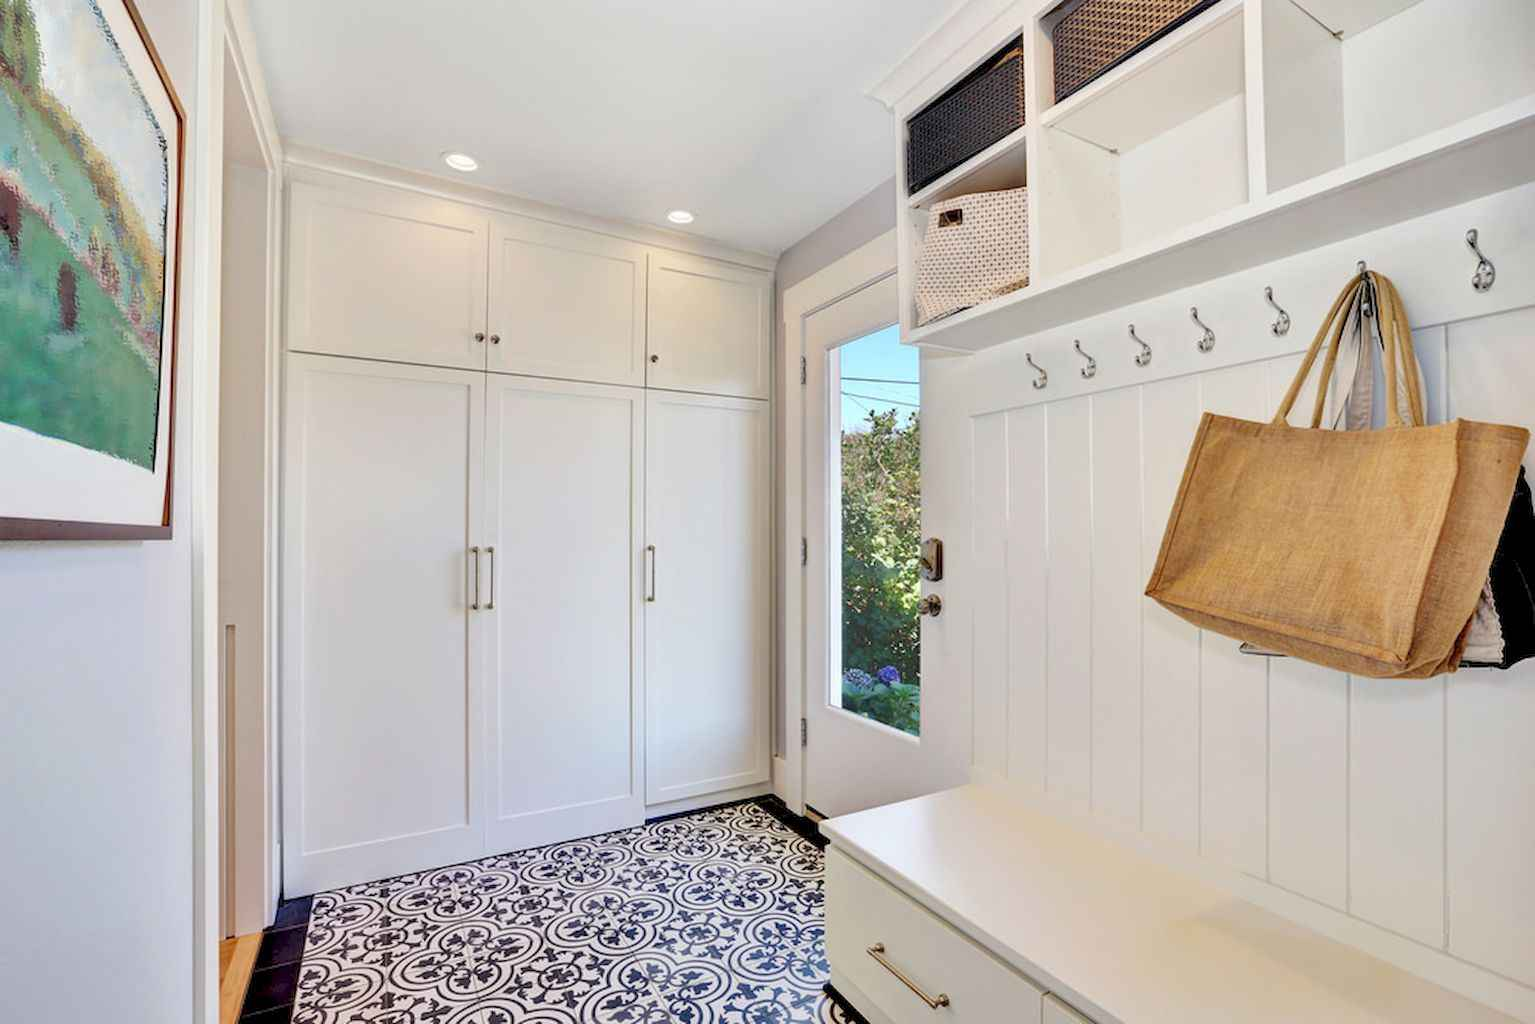 65 Cool Mudroom Design Ideas and Remodel (39)